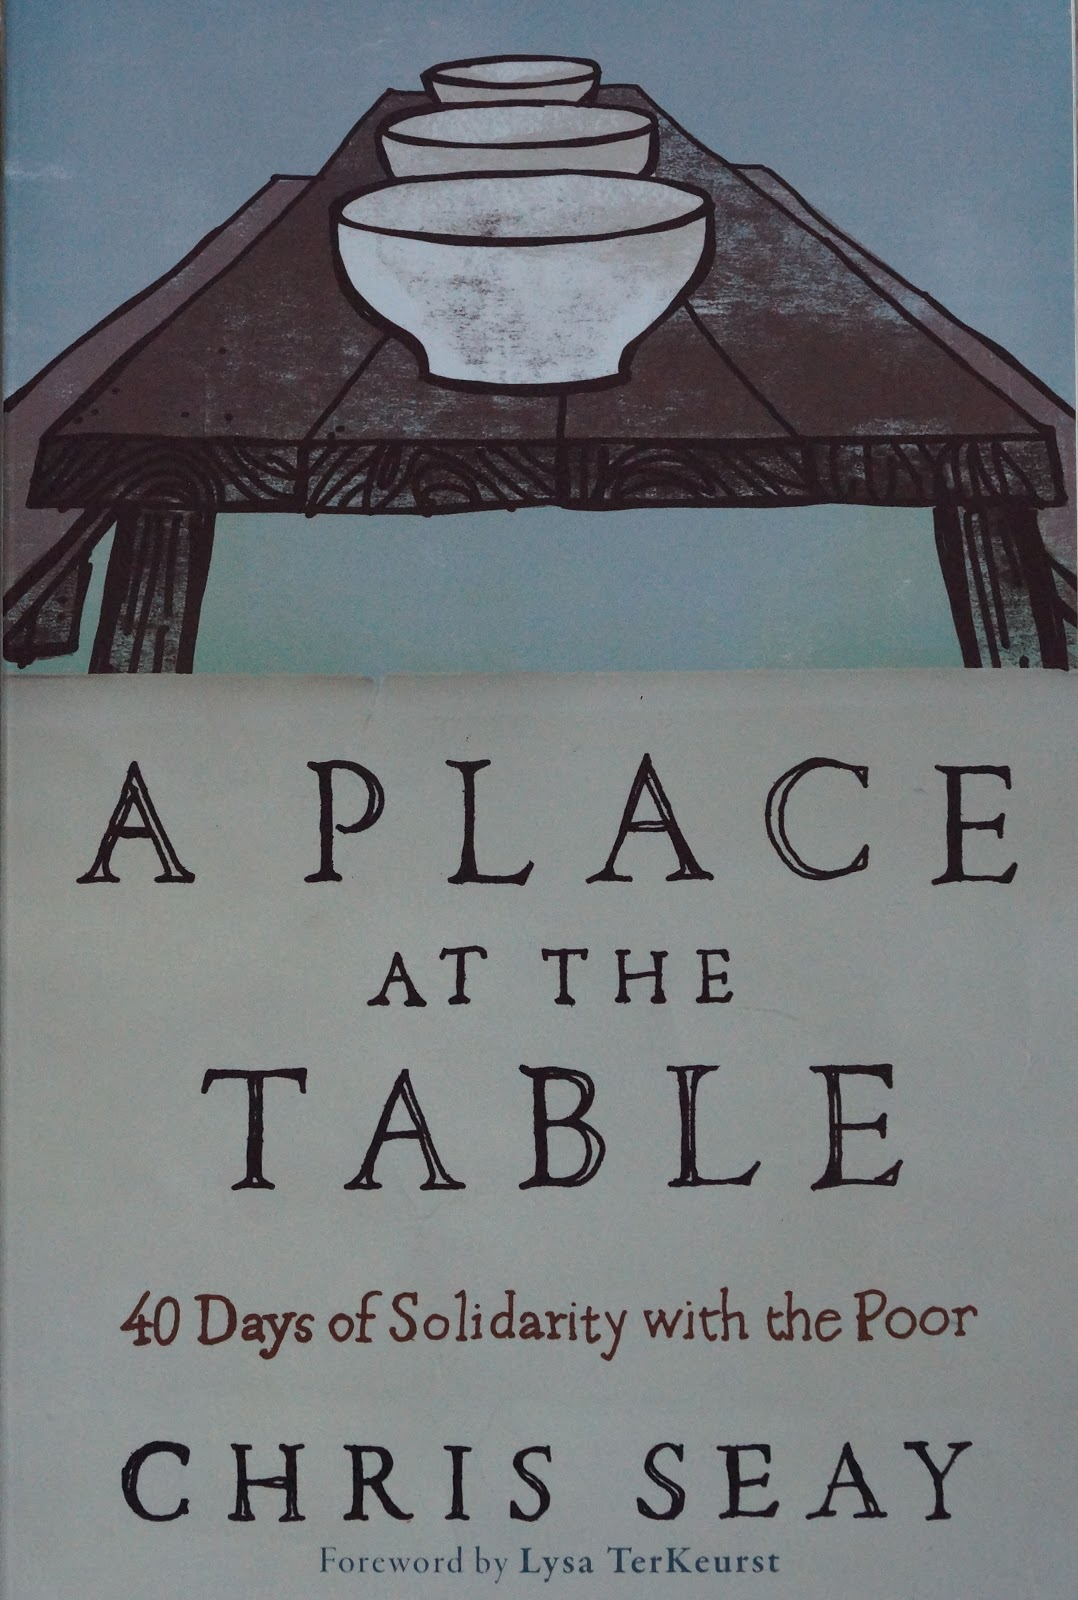 compassion family a place at the table book giveaway rh compassionfamily blogspot com